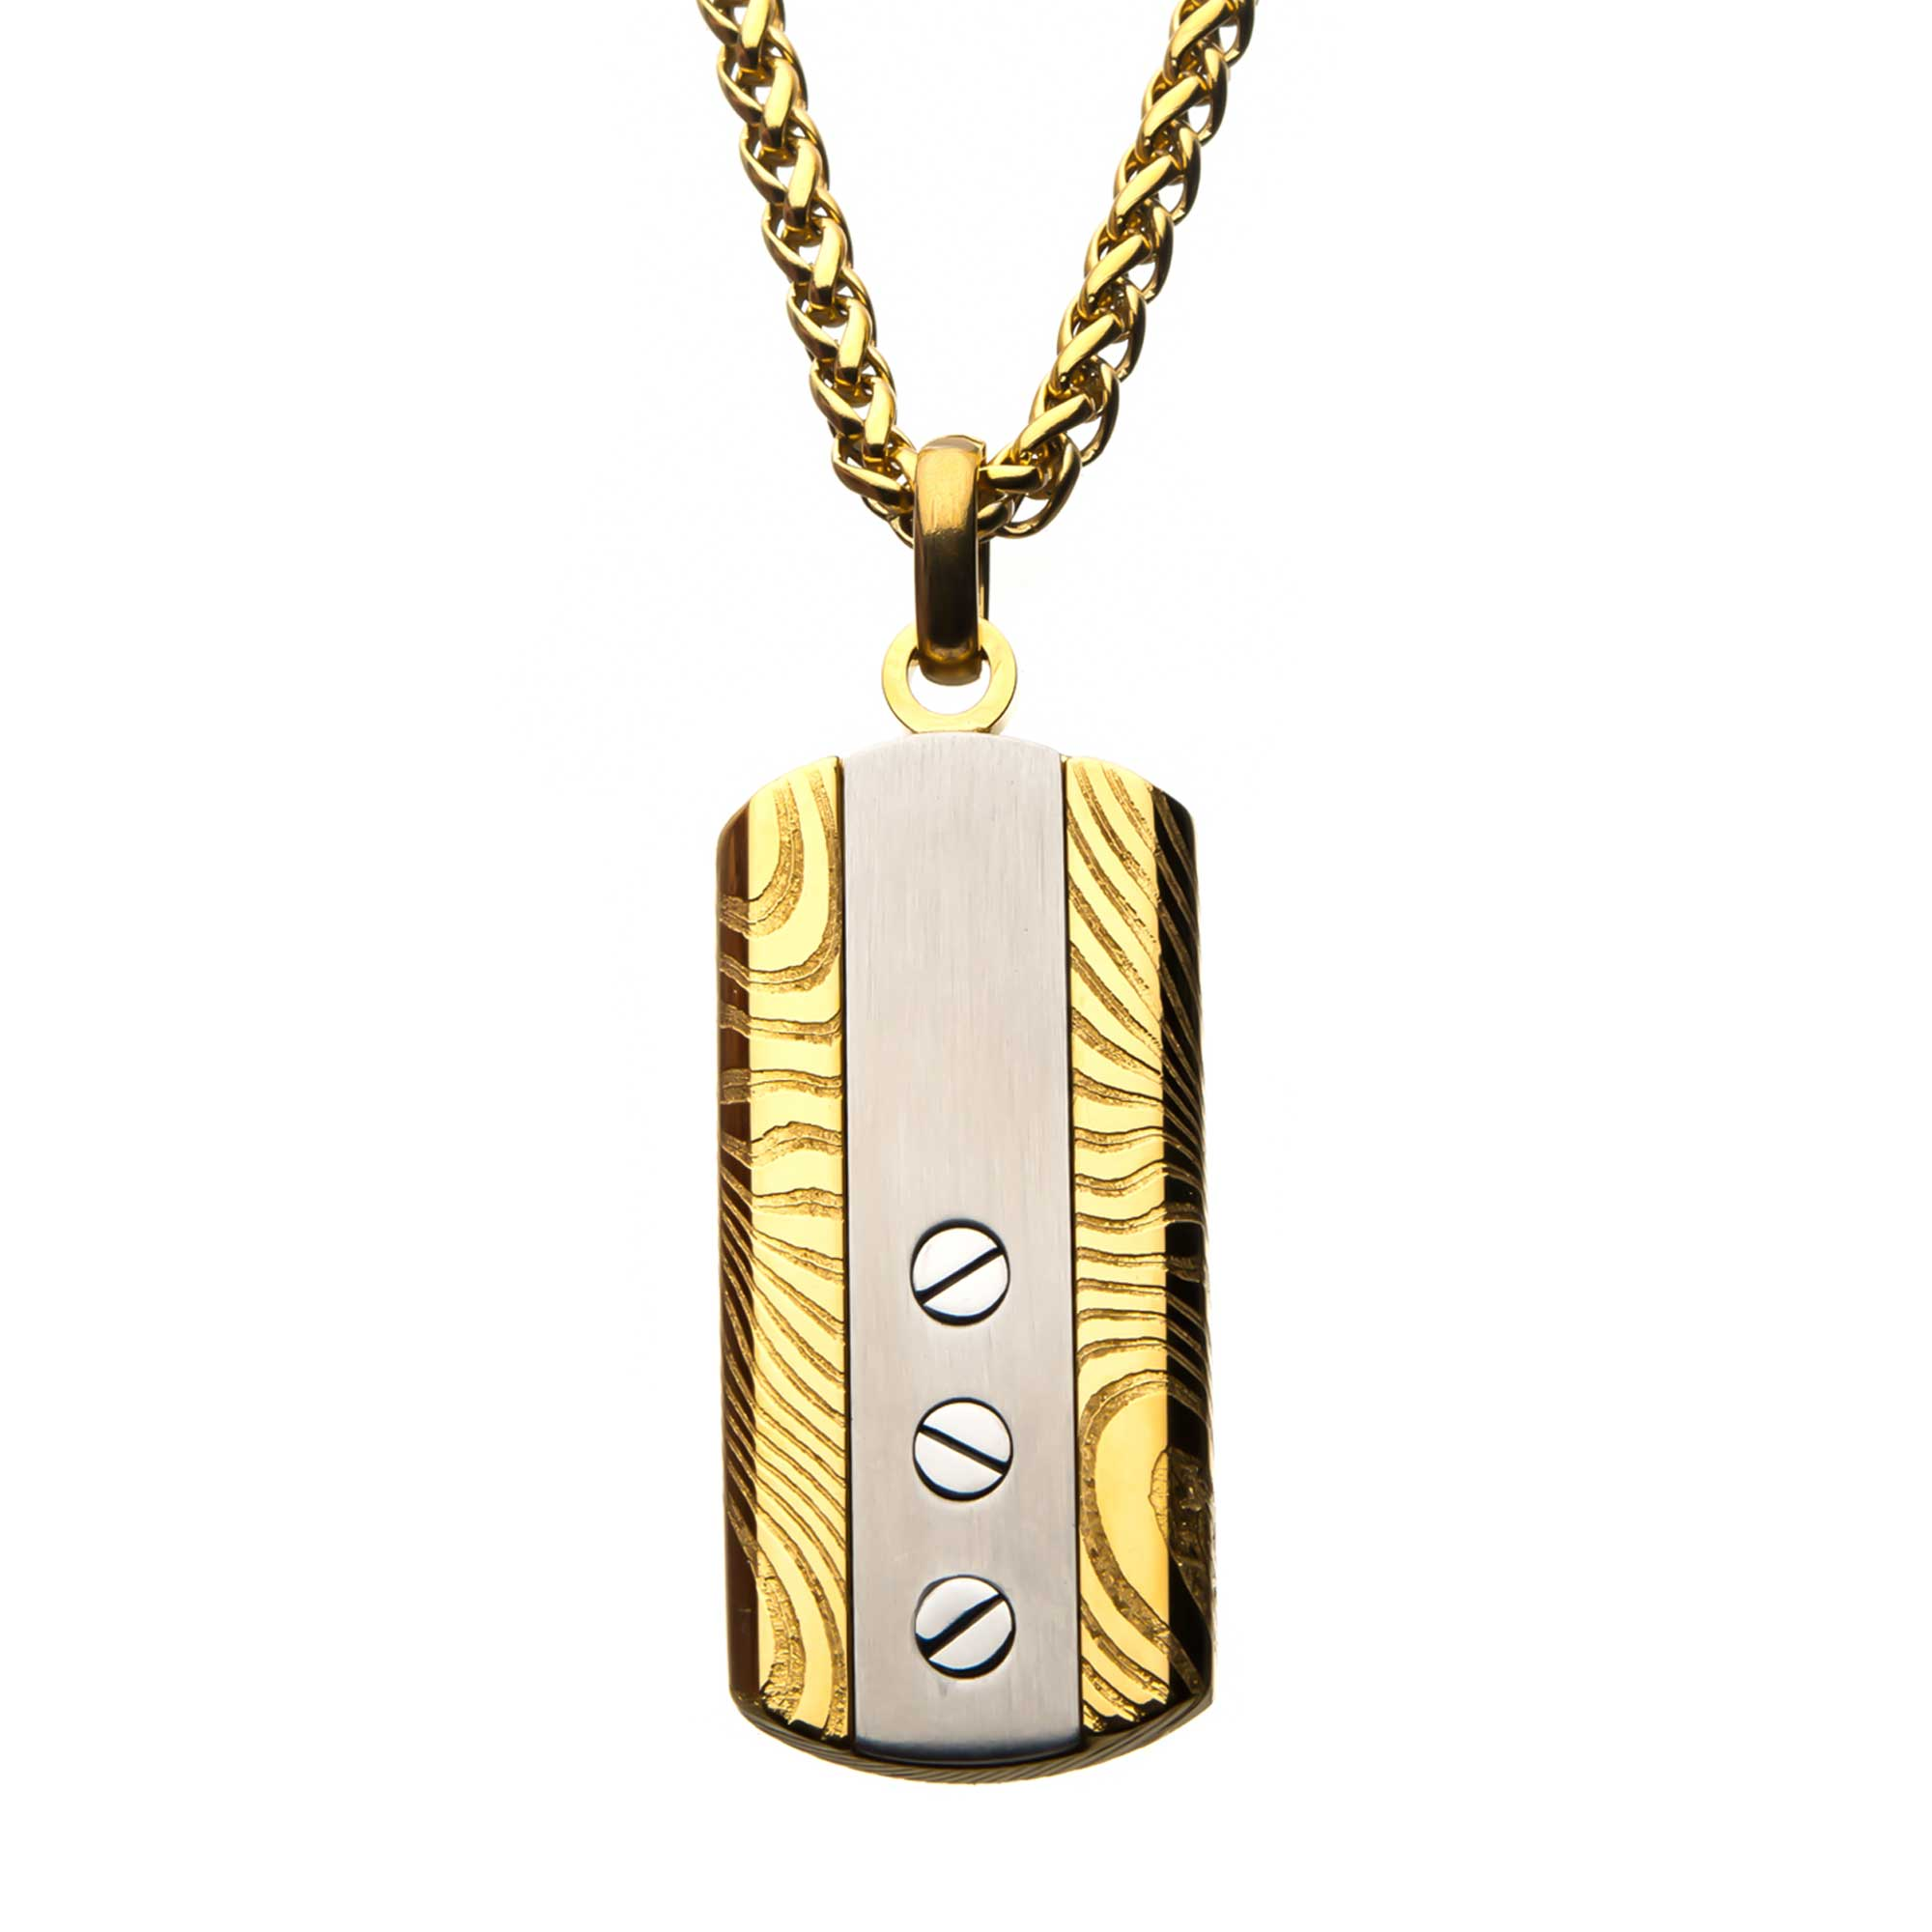 Stainless Steel & Gold Plated Screw Damascus Dog Tag Pendant with Chain